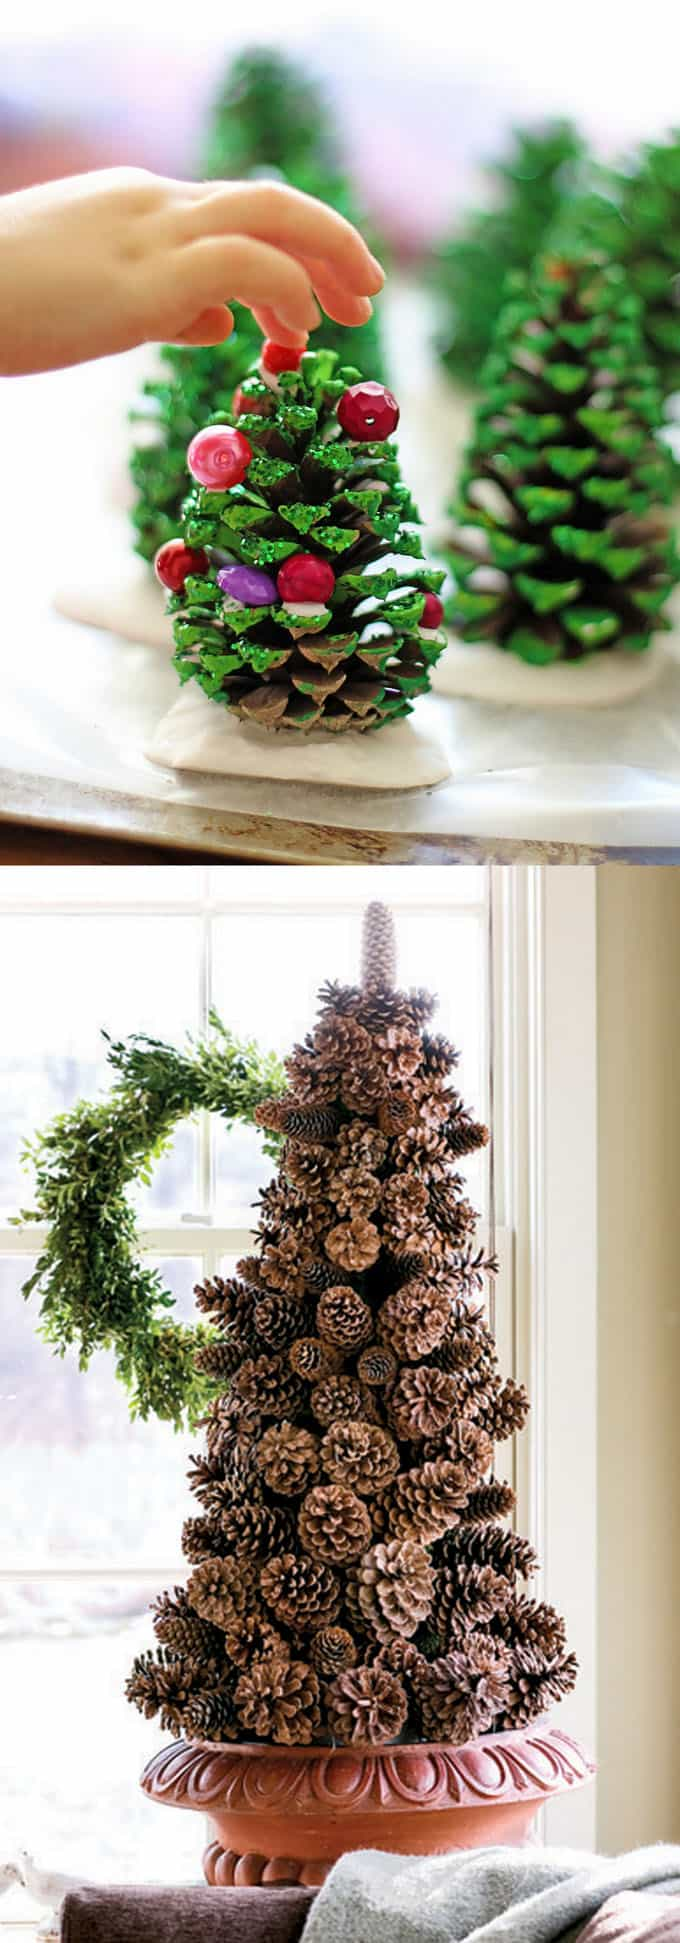 48 Amazing Christmas Tree Ideas - A Piece of Rainbow